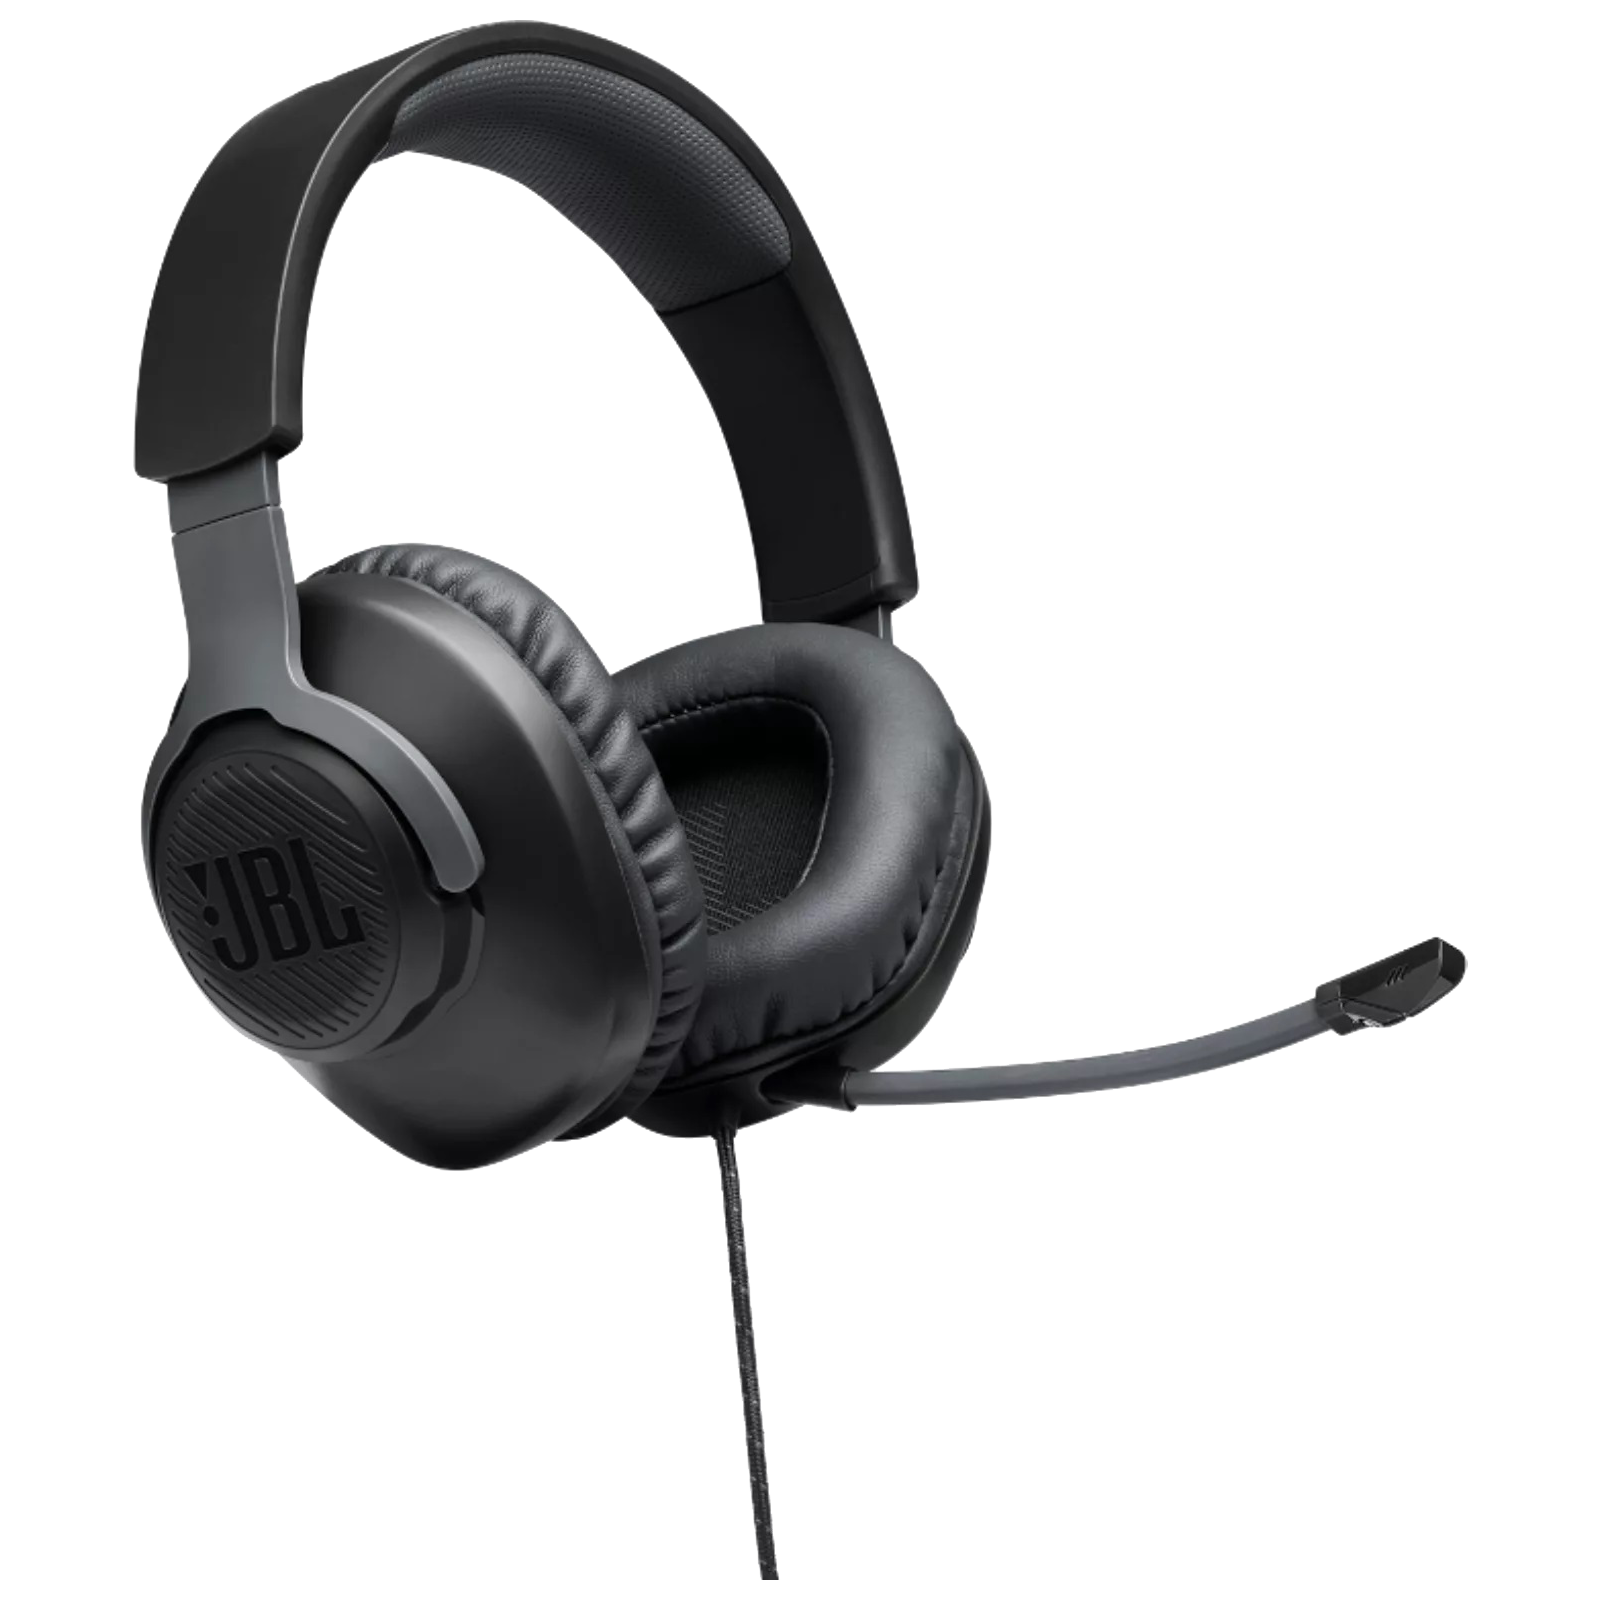 JBL Free WFH Over-Ear Wired Headphone with Mic (Hands-free Stereo Calls, JBLFREEWFH, Black)_1